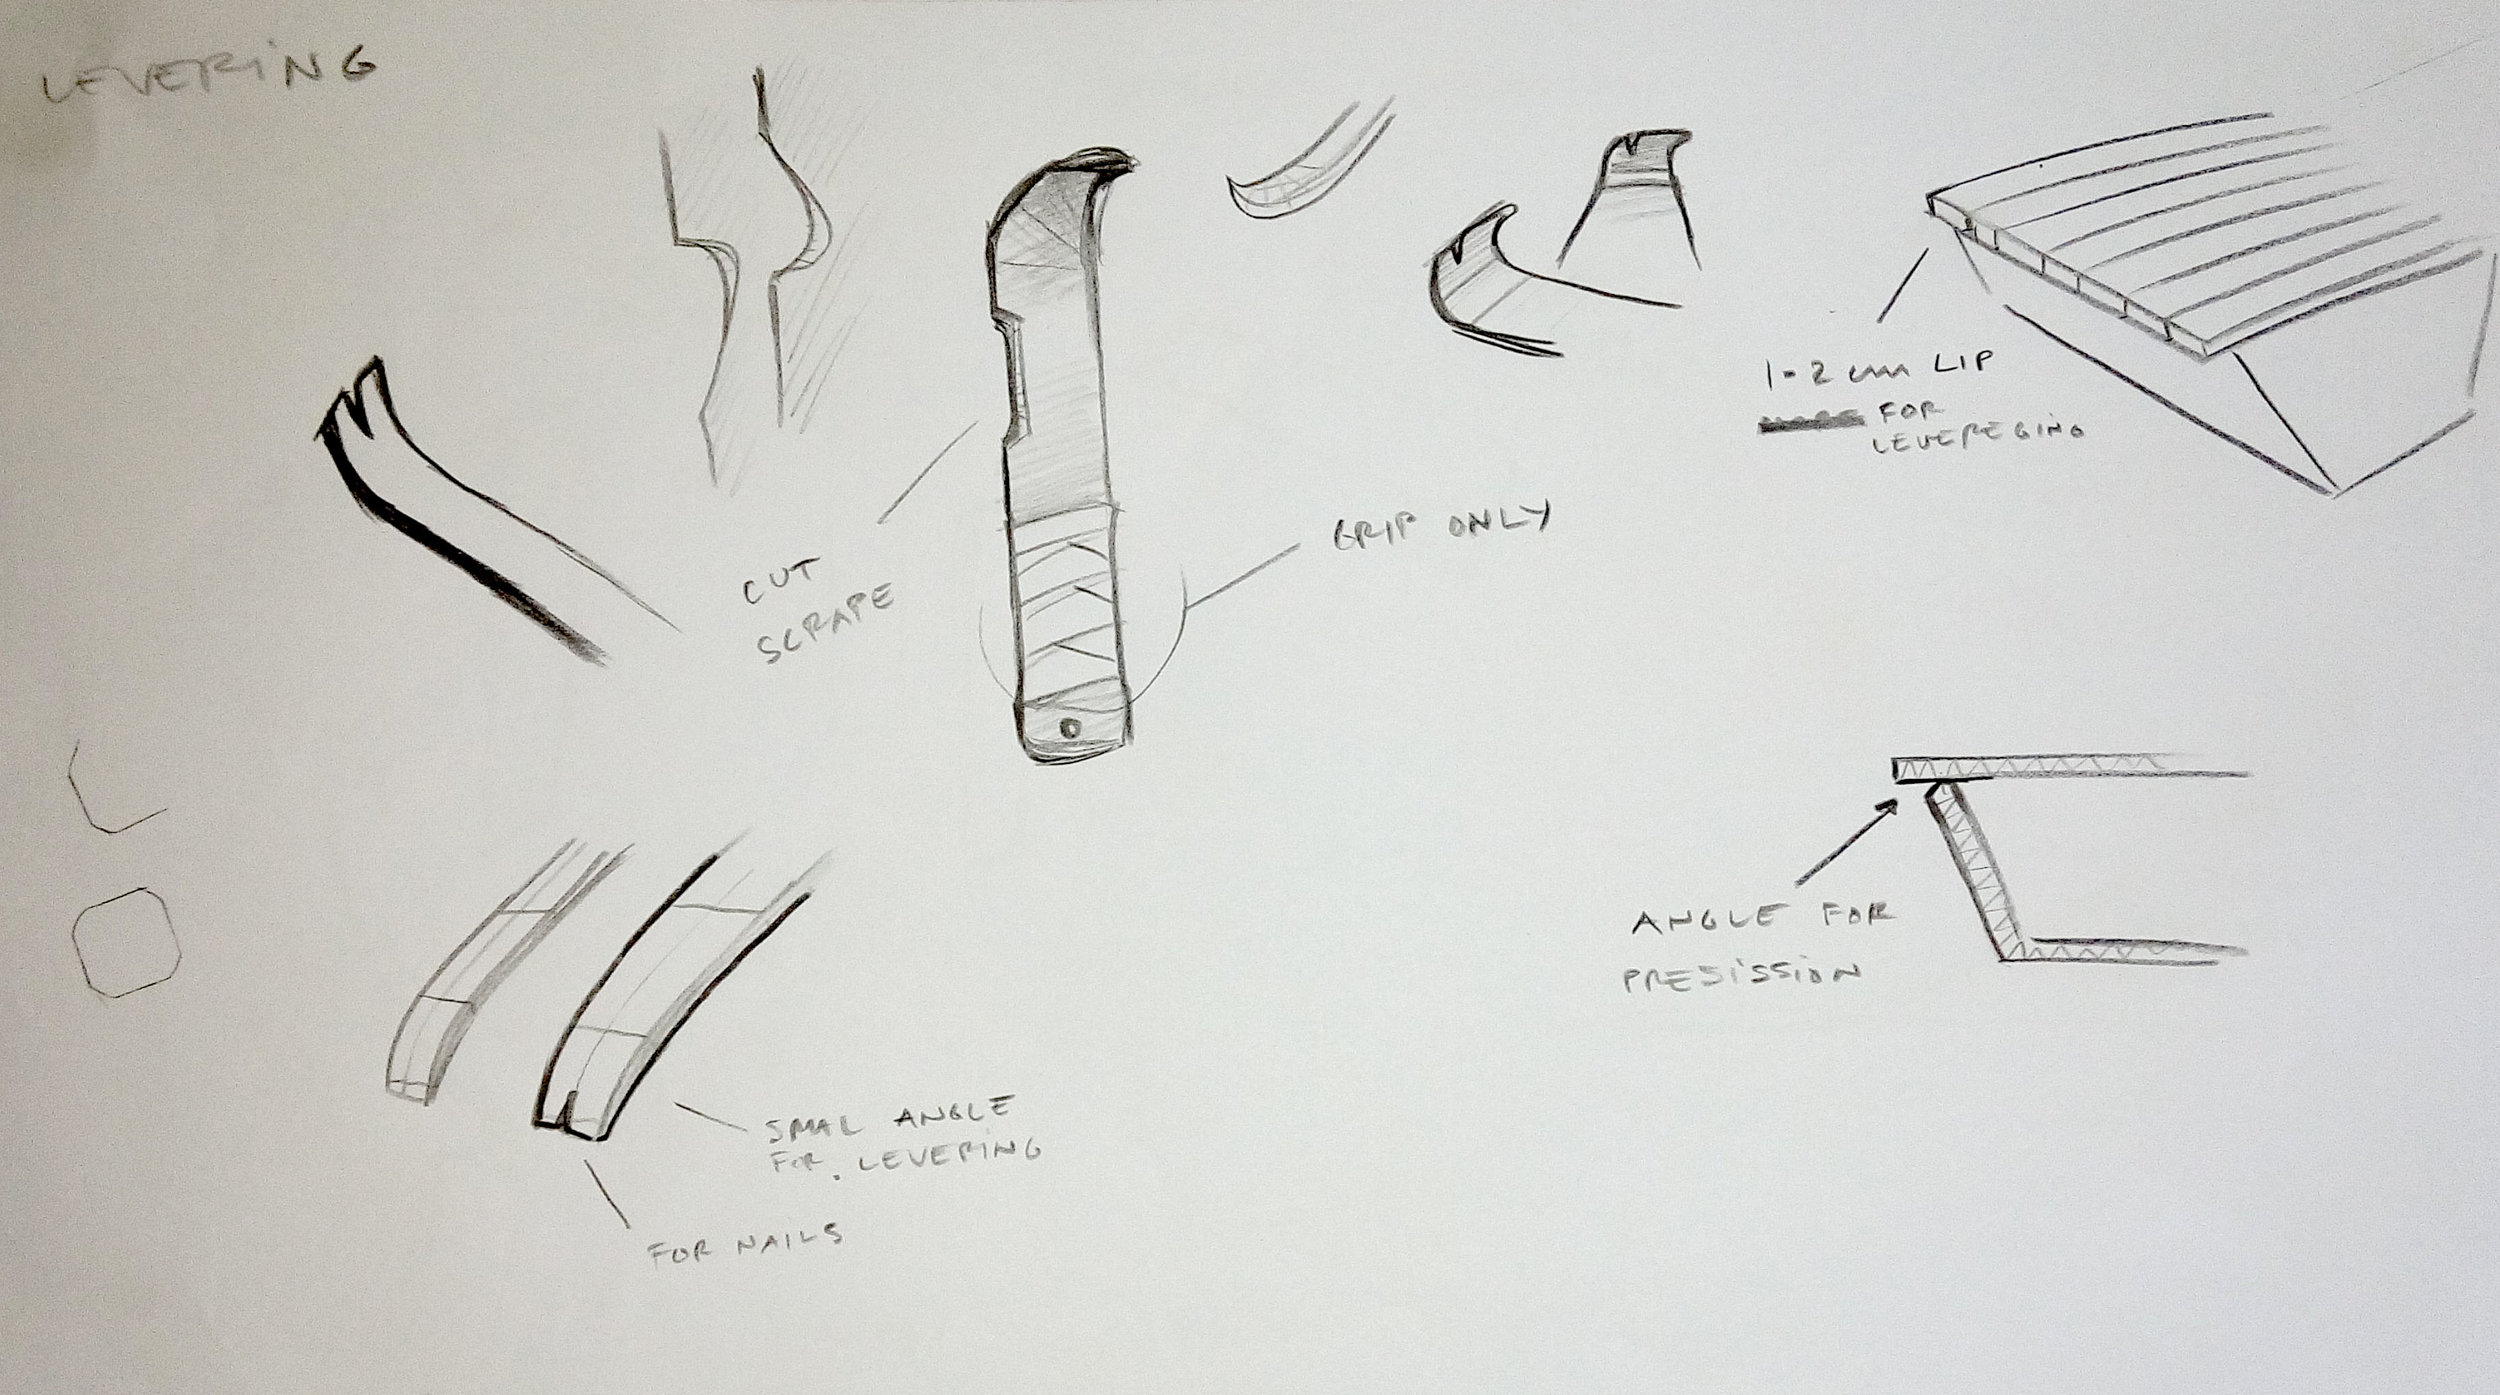 1502_MAL_sketches for ideas to incorporate levering abilities on the hive tool.jpg